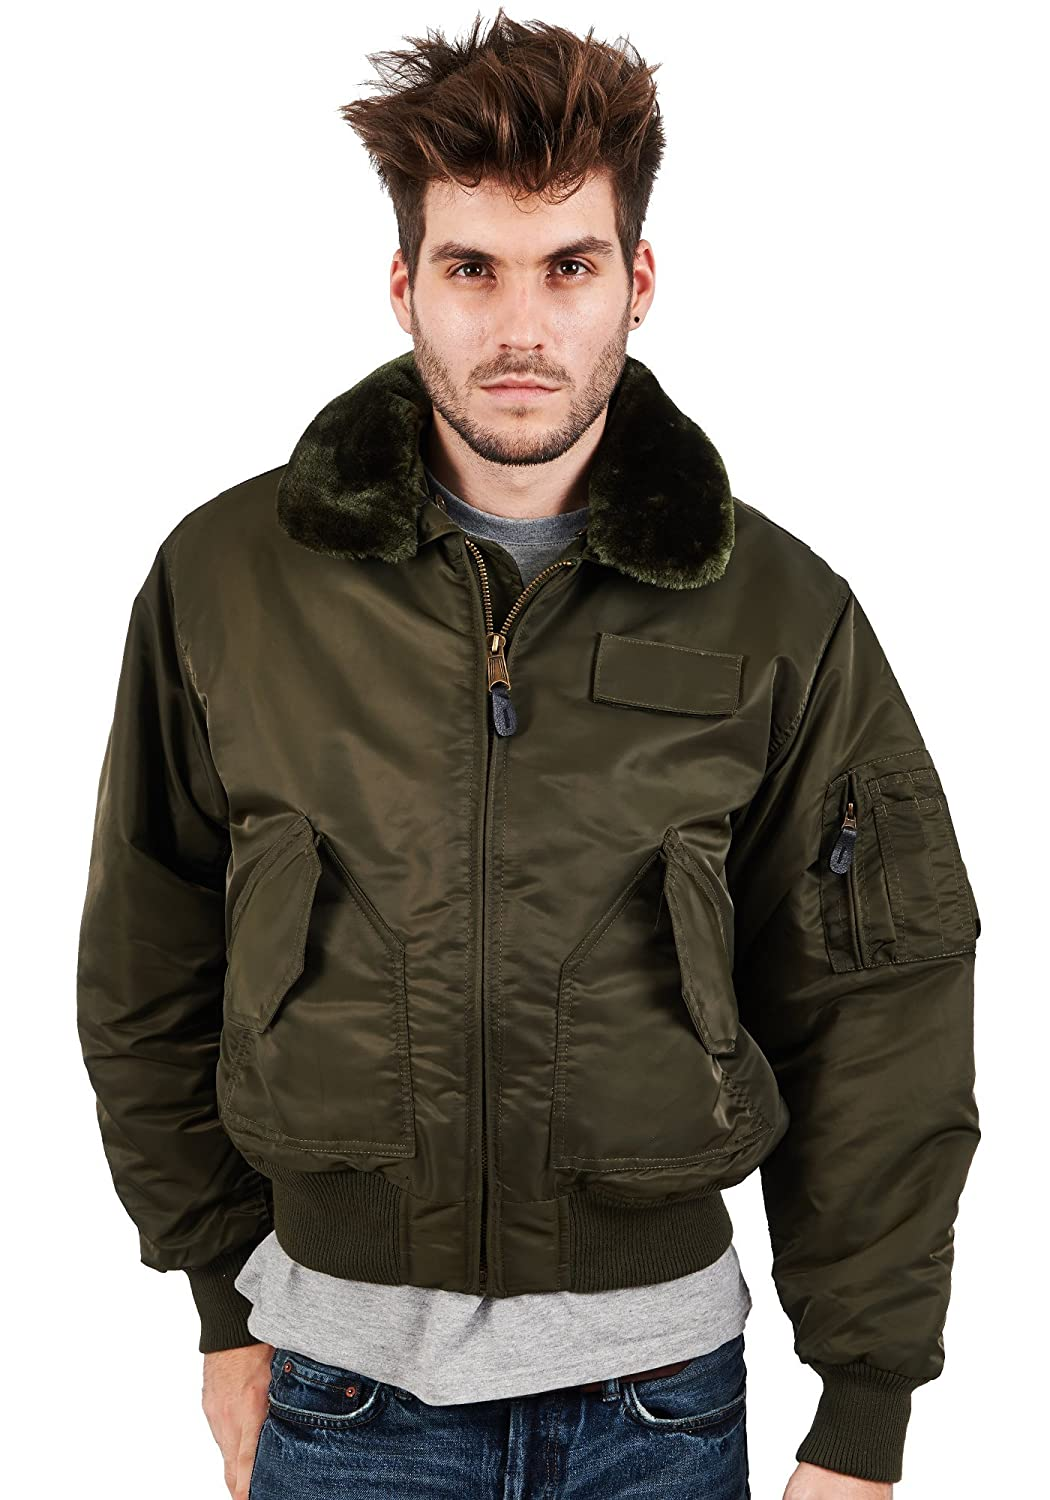 MA2 BOMBER FLIGHT MILITARY COMBAT JACKET: Amazon.co.uk: Clothing